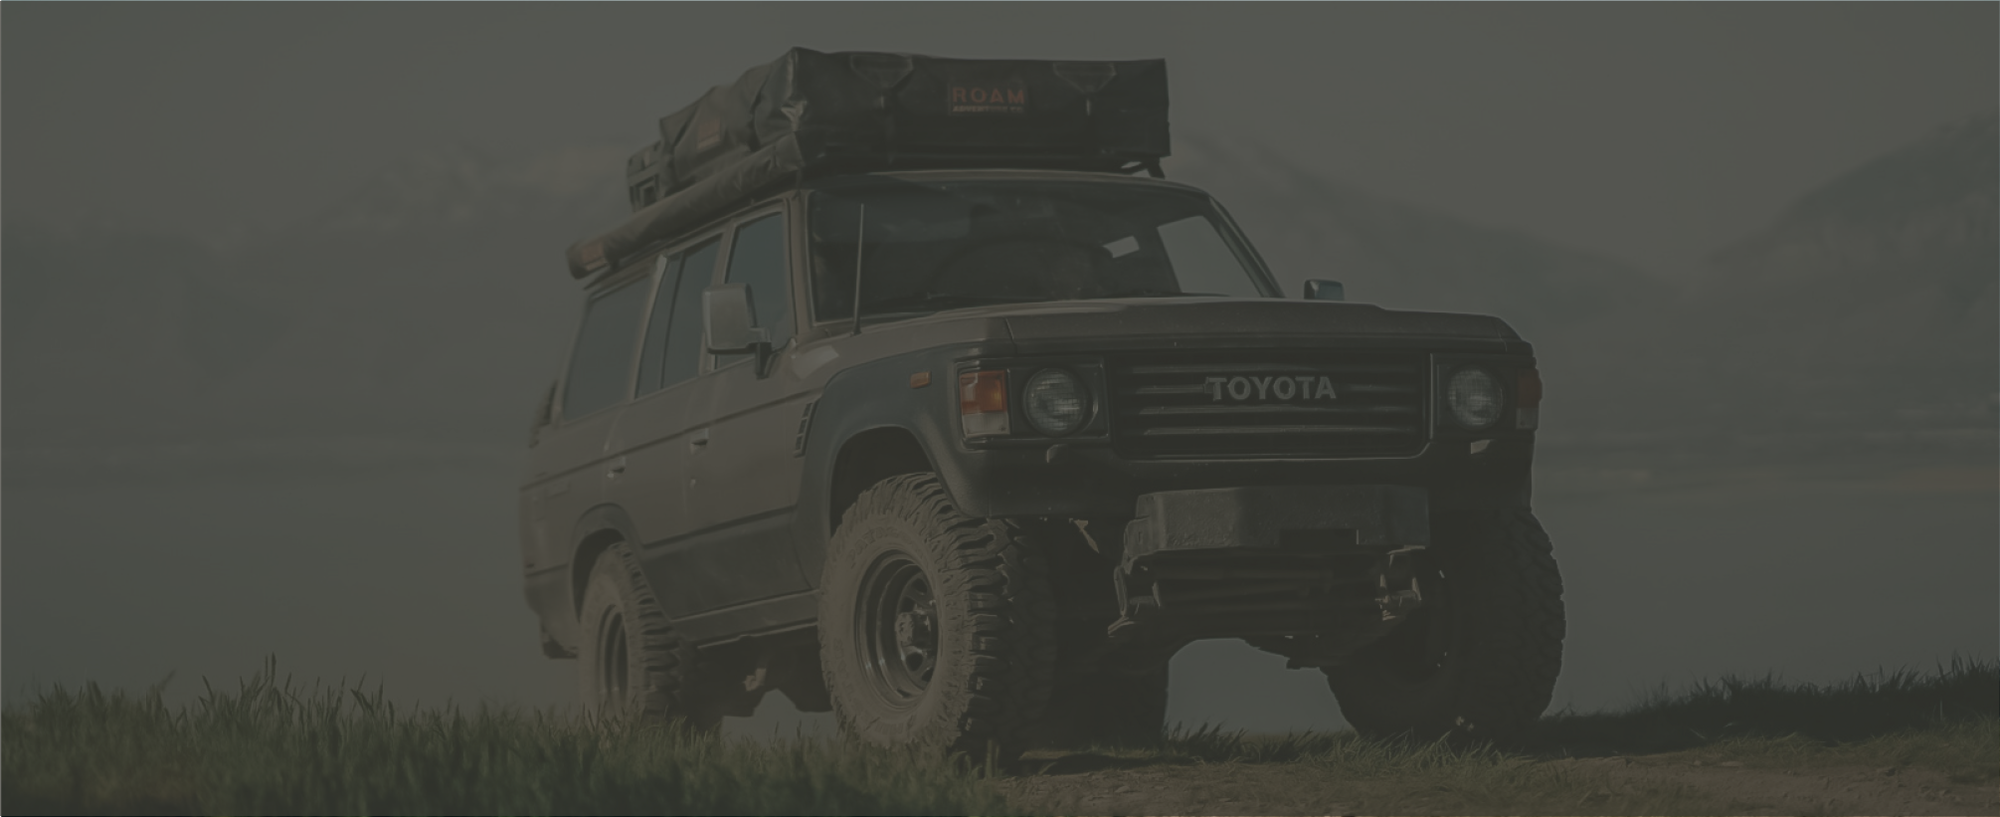 Rooftop tent on Toyota Land Cruiser